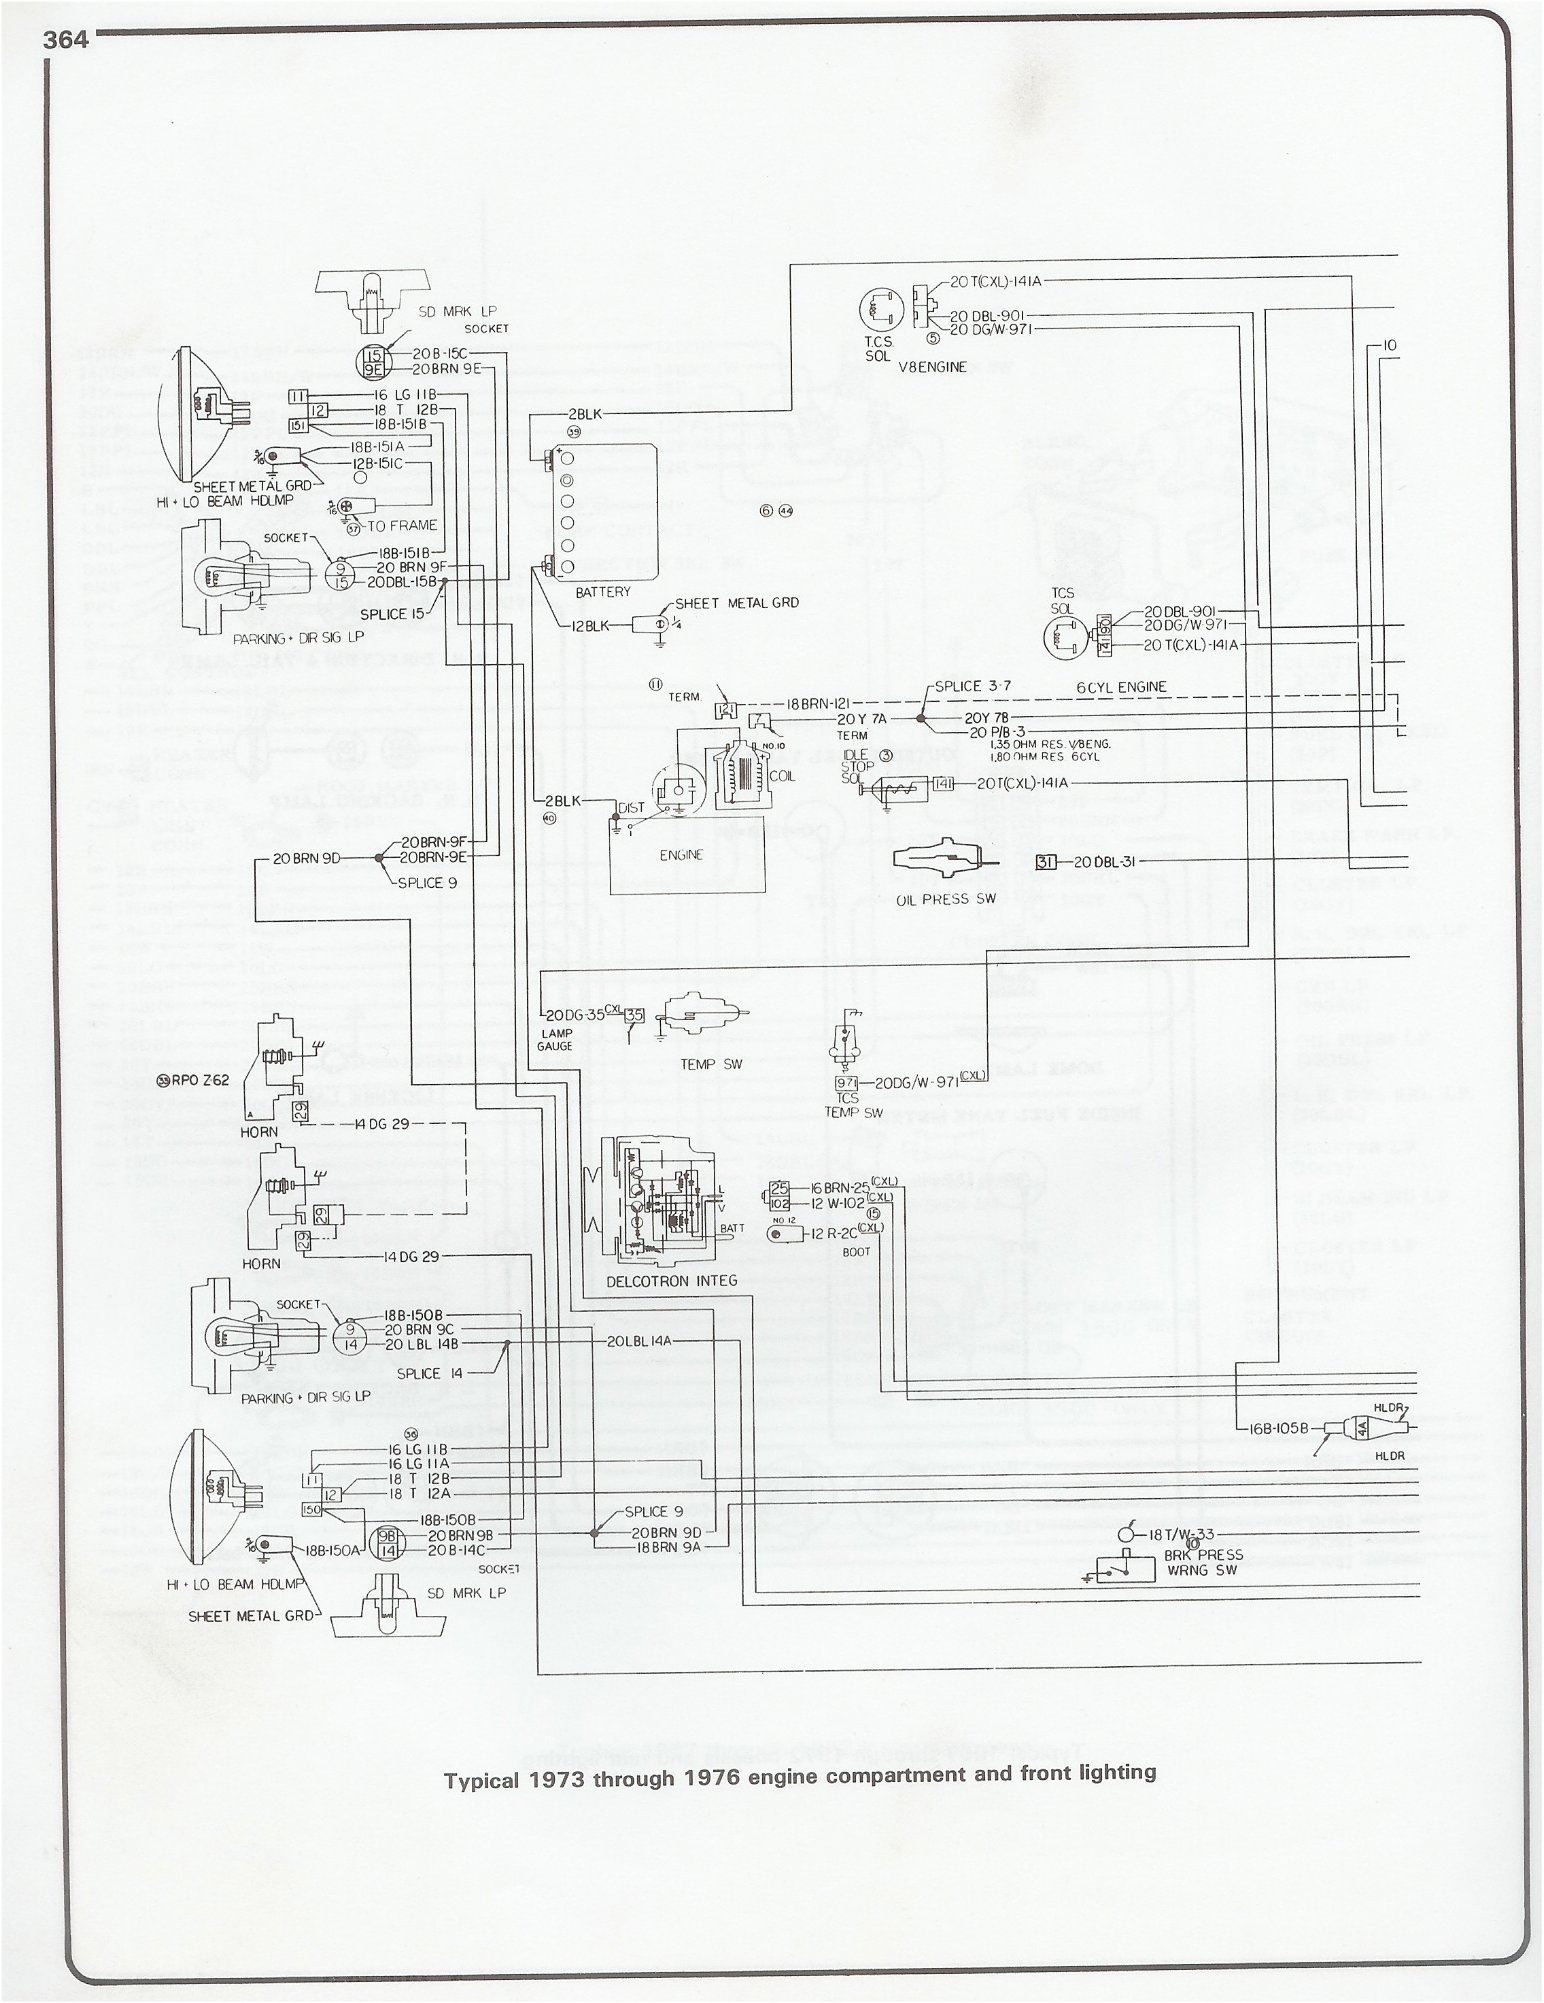 hight resolution of 73 corvette alternator wiring diagram best wiring library 1984 corvette wiring diagram complete 73 87 wiring